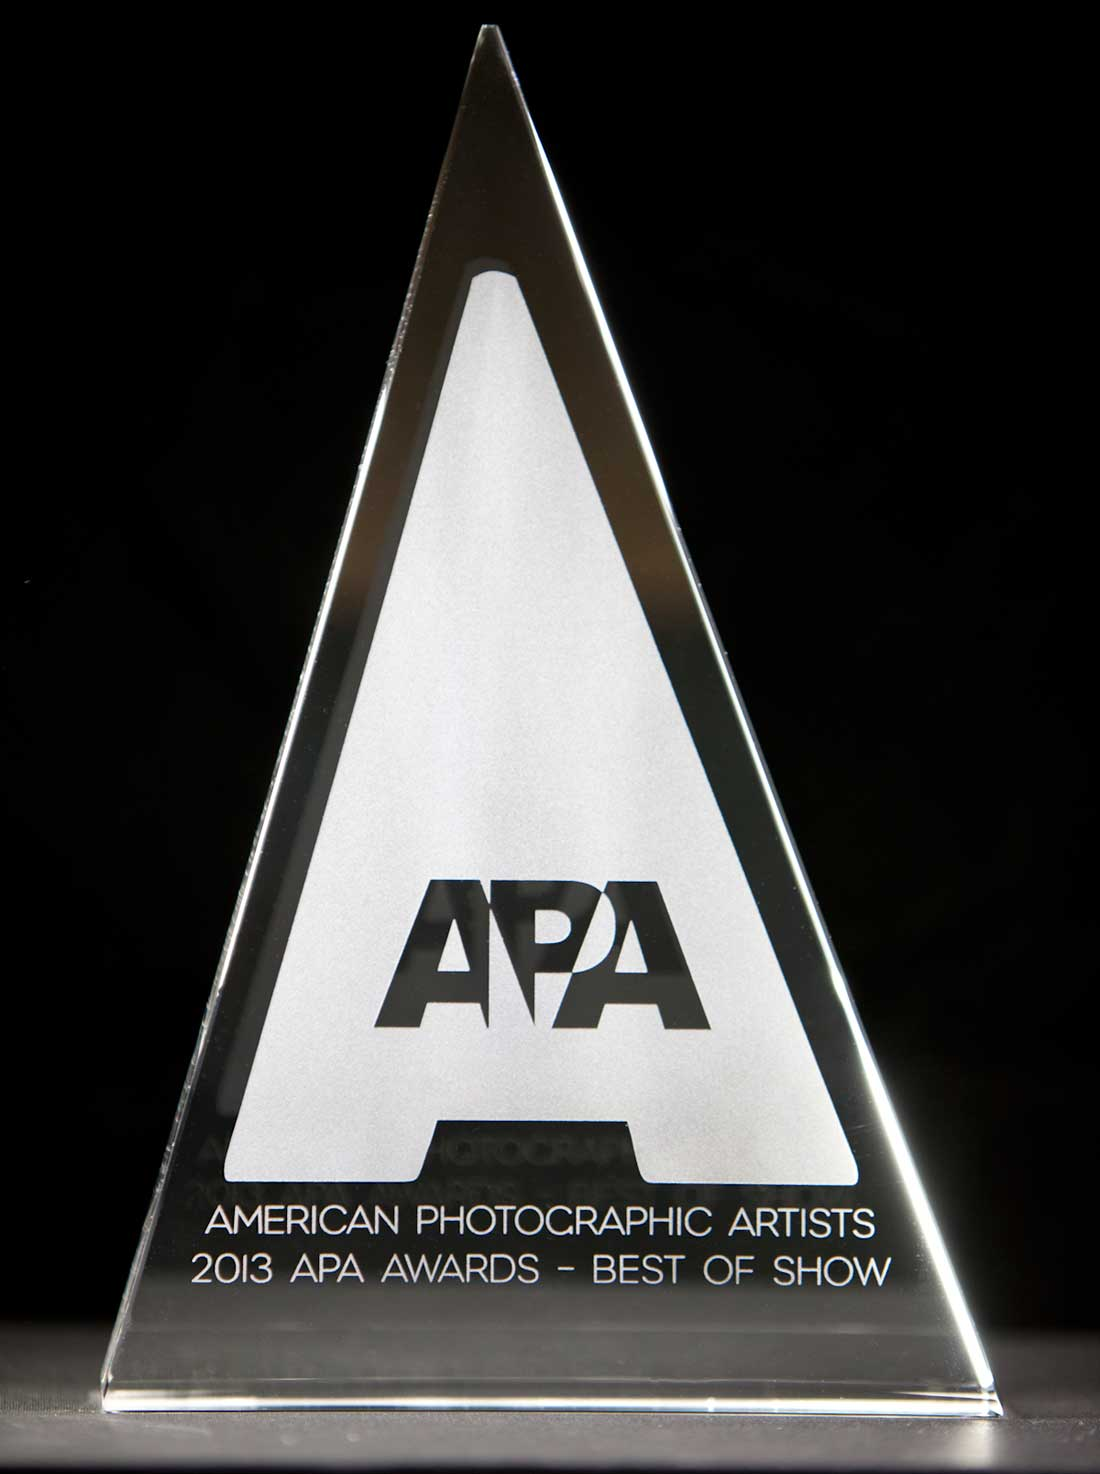 Judging of the APA Awards is going on now